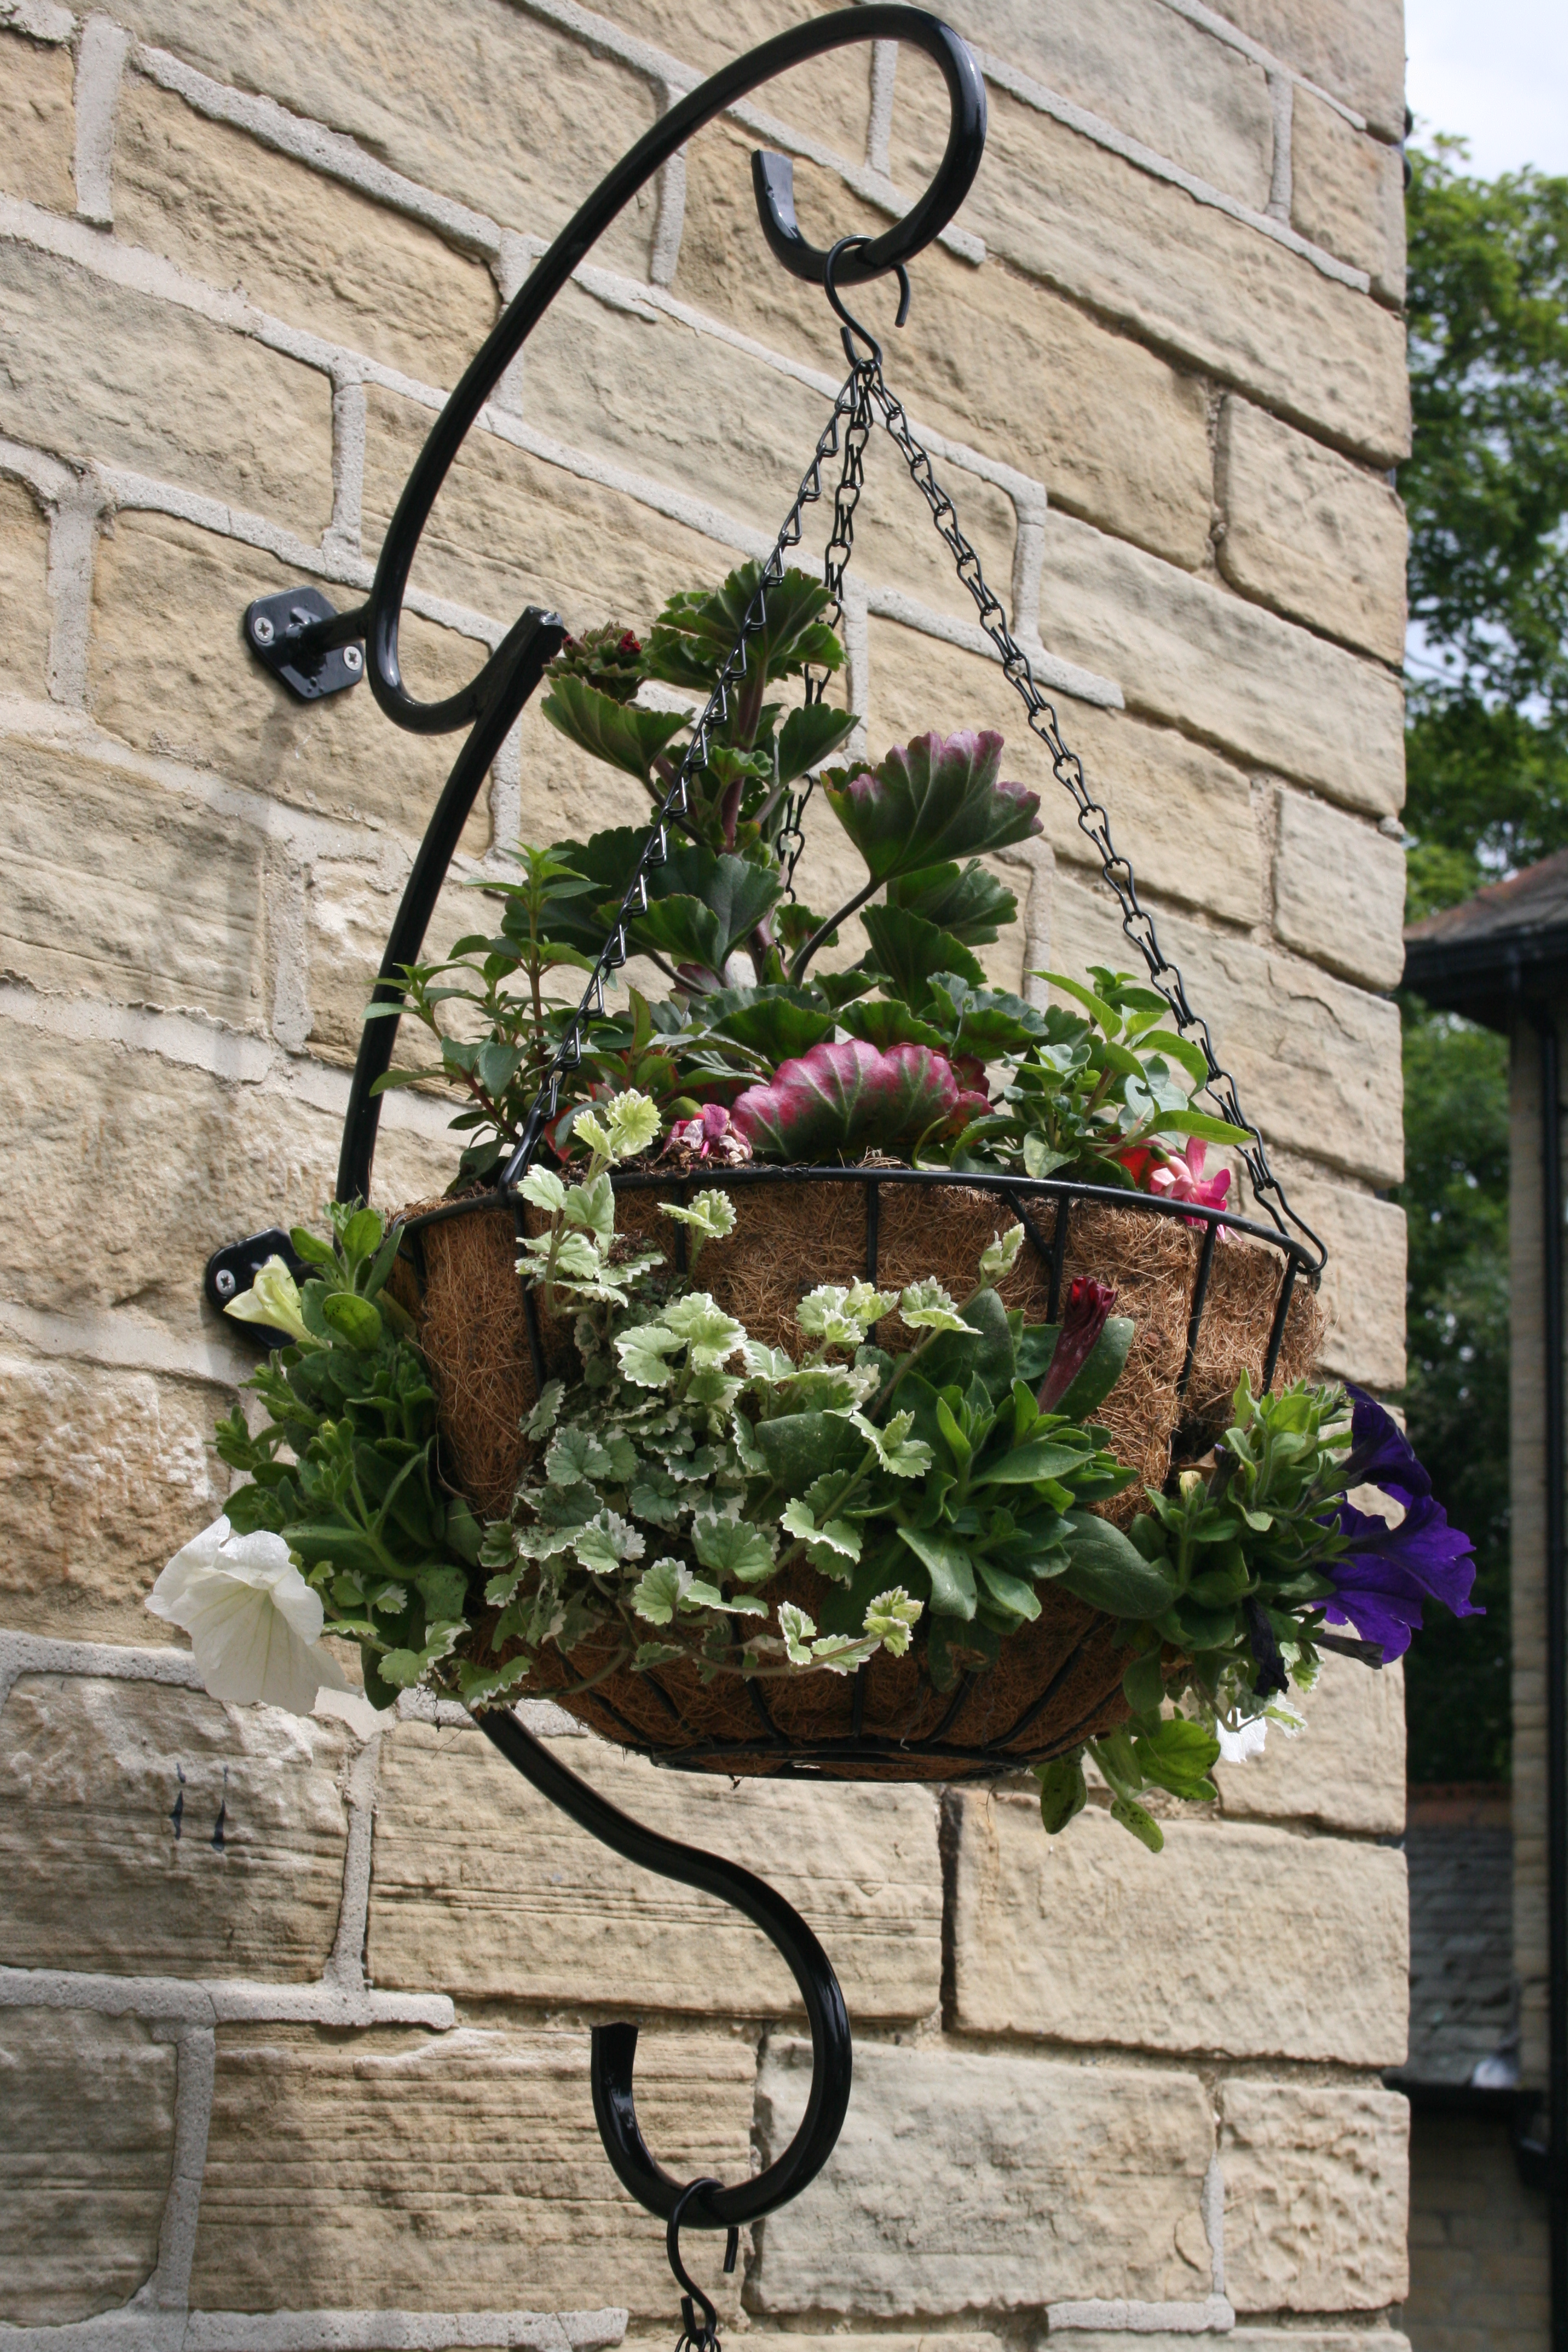 how to plant hanging baskets garden features ideas. Black Bedroom Furniture Sets. Home Design Ideas